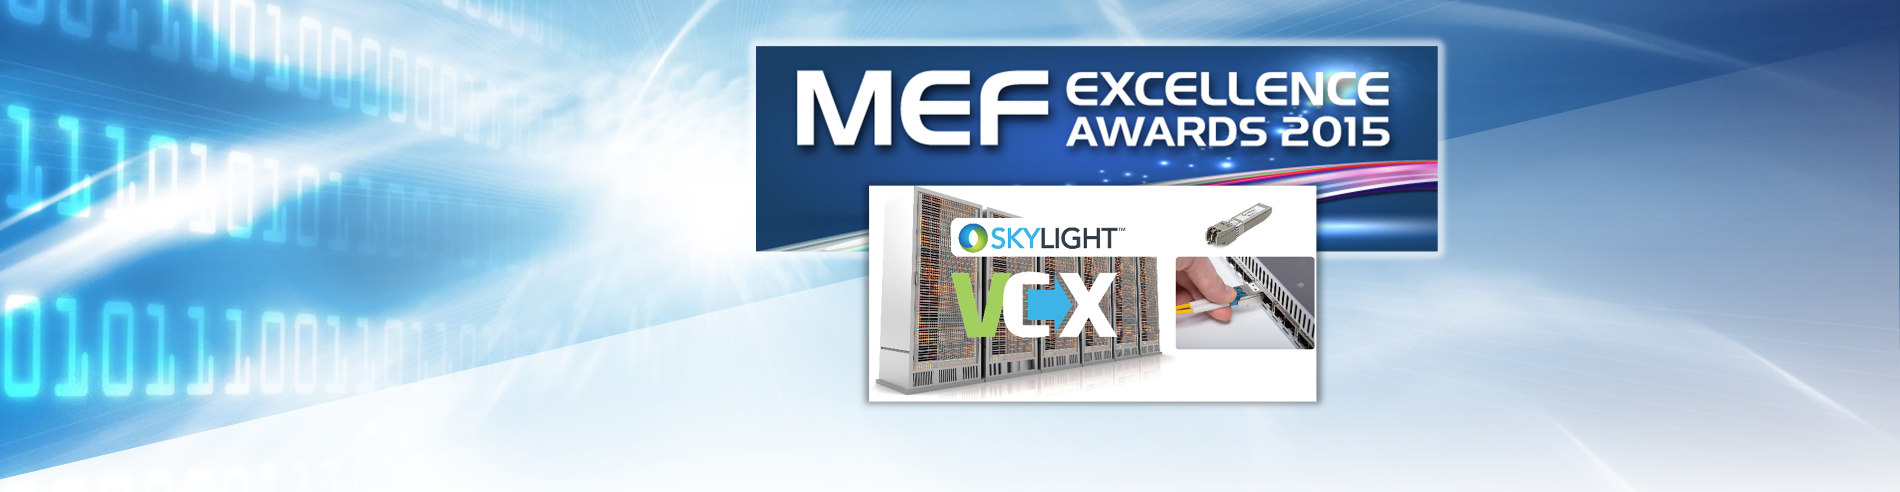 MEF_Excellence_Awards_Home_Page_Banner (1)